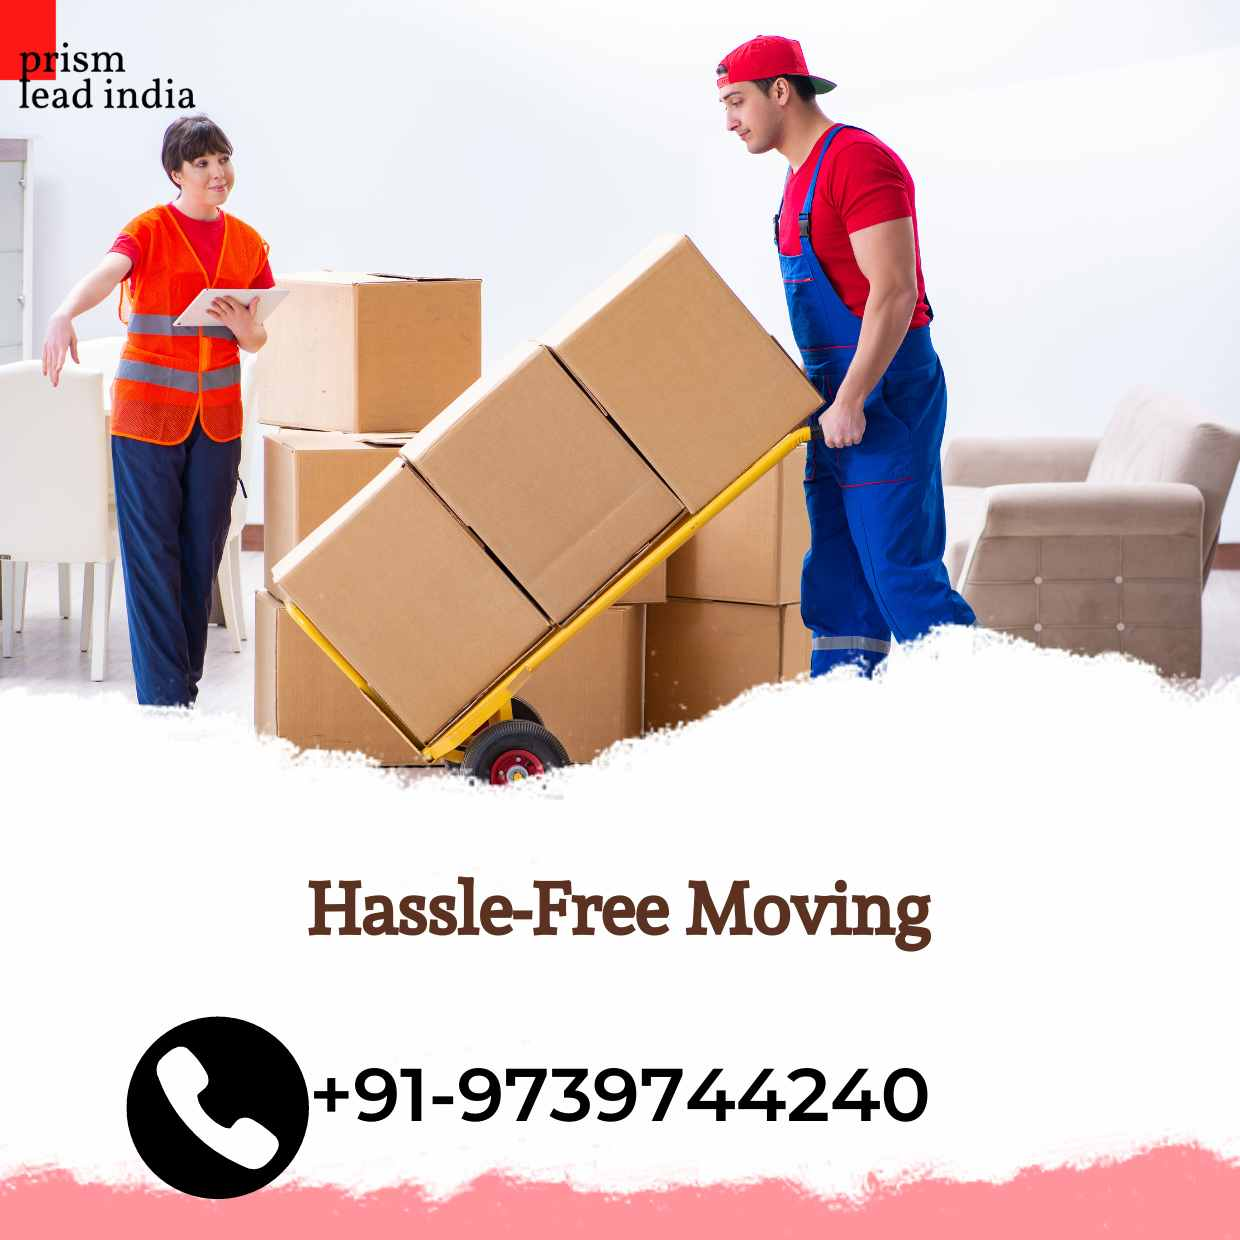 Cheap And Best Packers And Movers Bangalore Near Me # PRISM LEAD INDIA